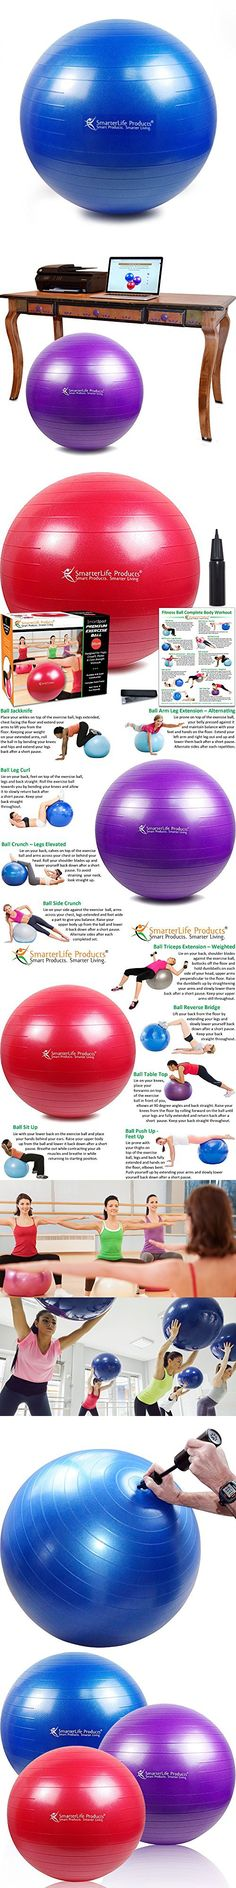 SALE -- SmarterLife Products Premium Exercise and Stability Ball - #1 for Fitness, Weight Loss, Core Strength, CrossFit, Yoga & Pilates (Blue, 75 cm)